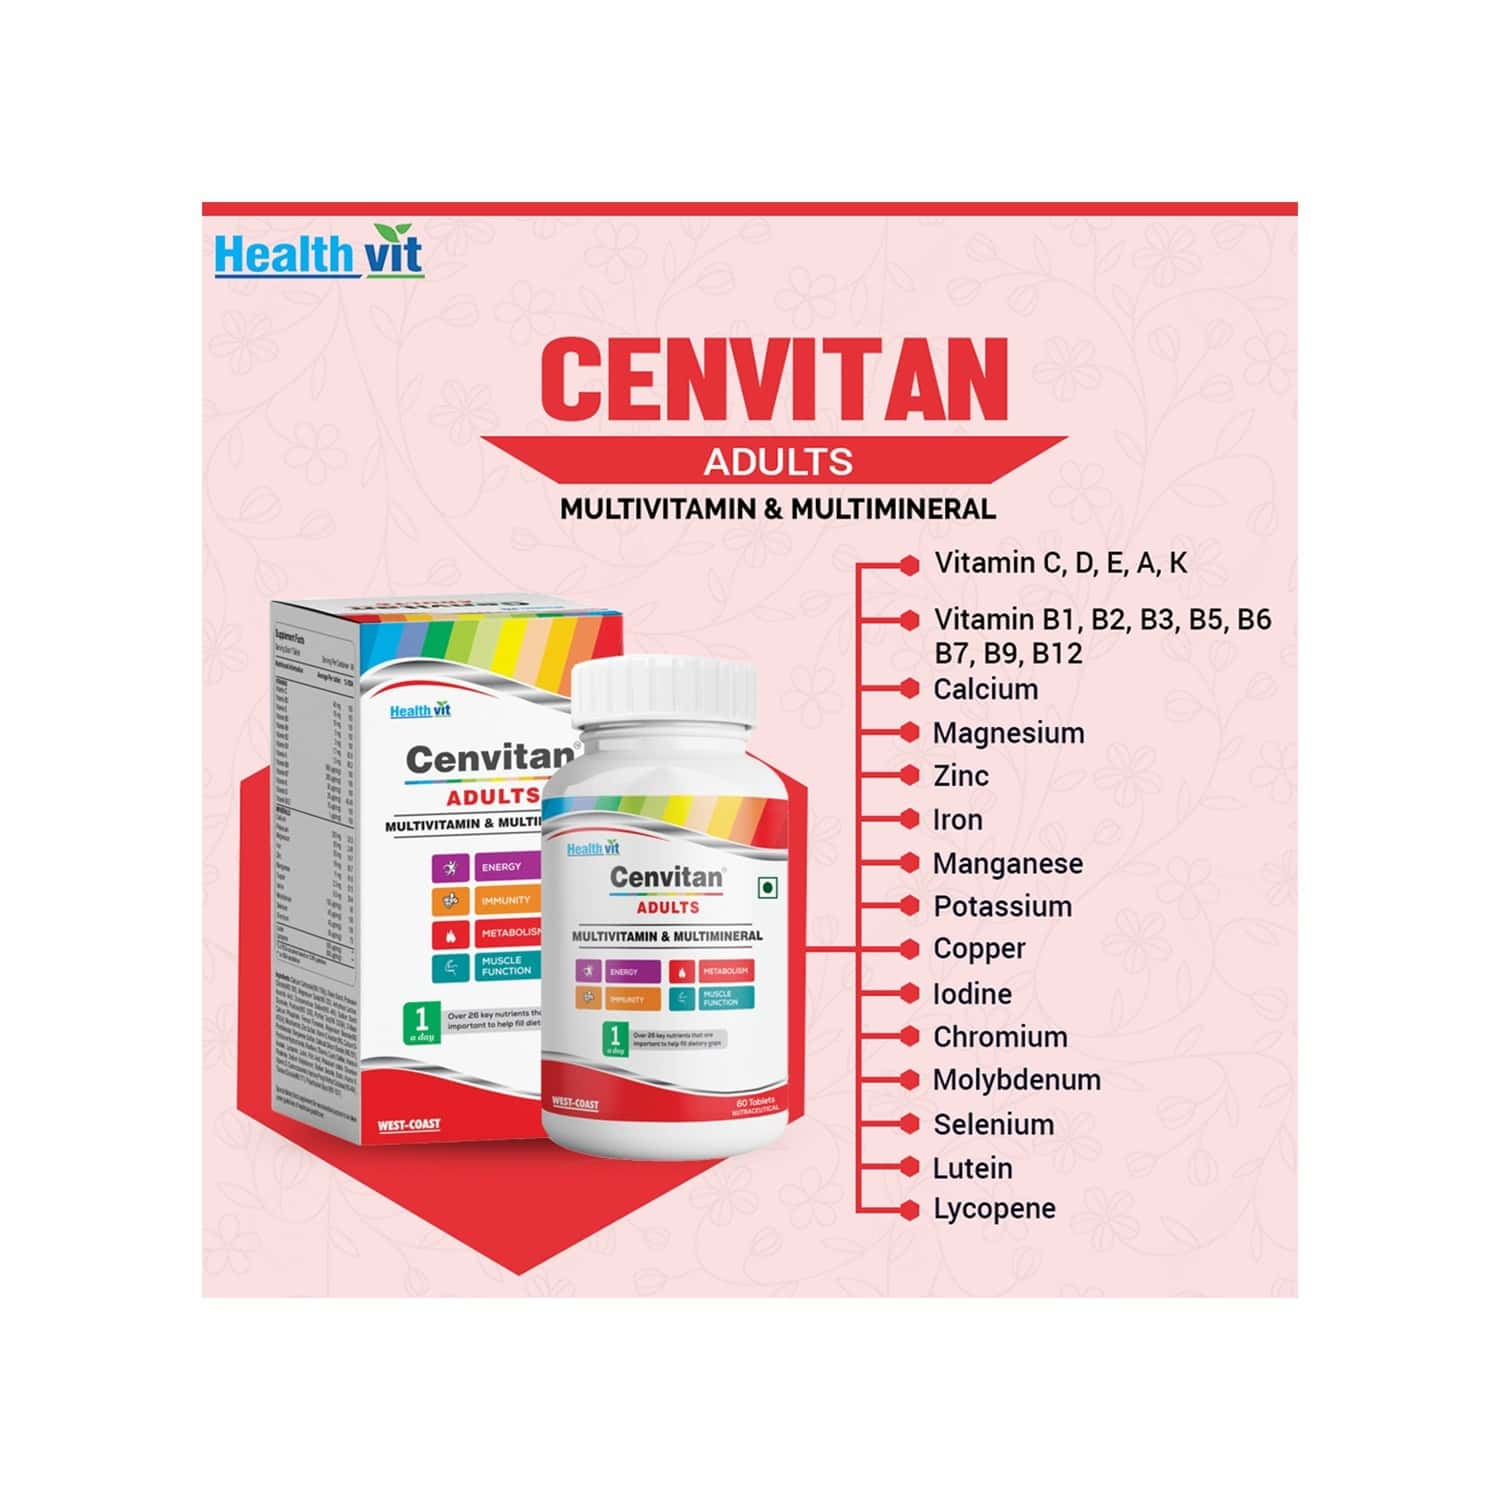 Healthvit Cenvitan Adults Multivitamin & Multimineral With 26 Nutrients (vitamins And Minerals) - 60 Tablets